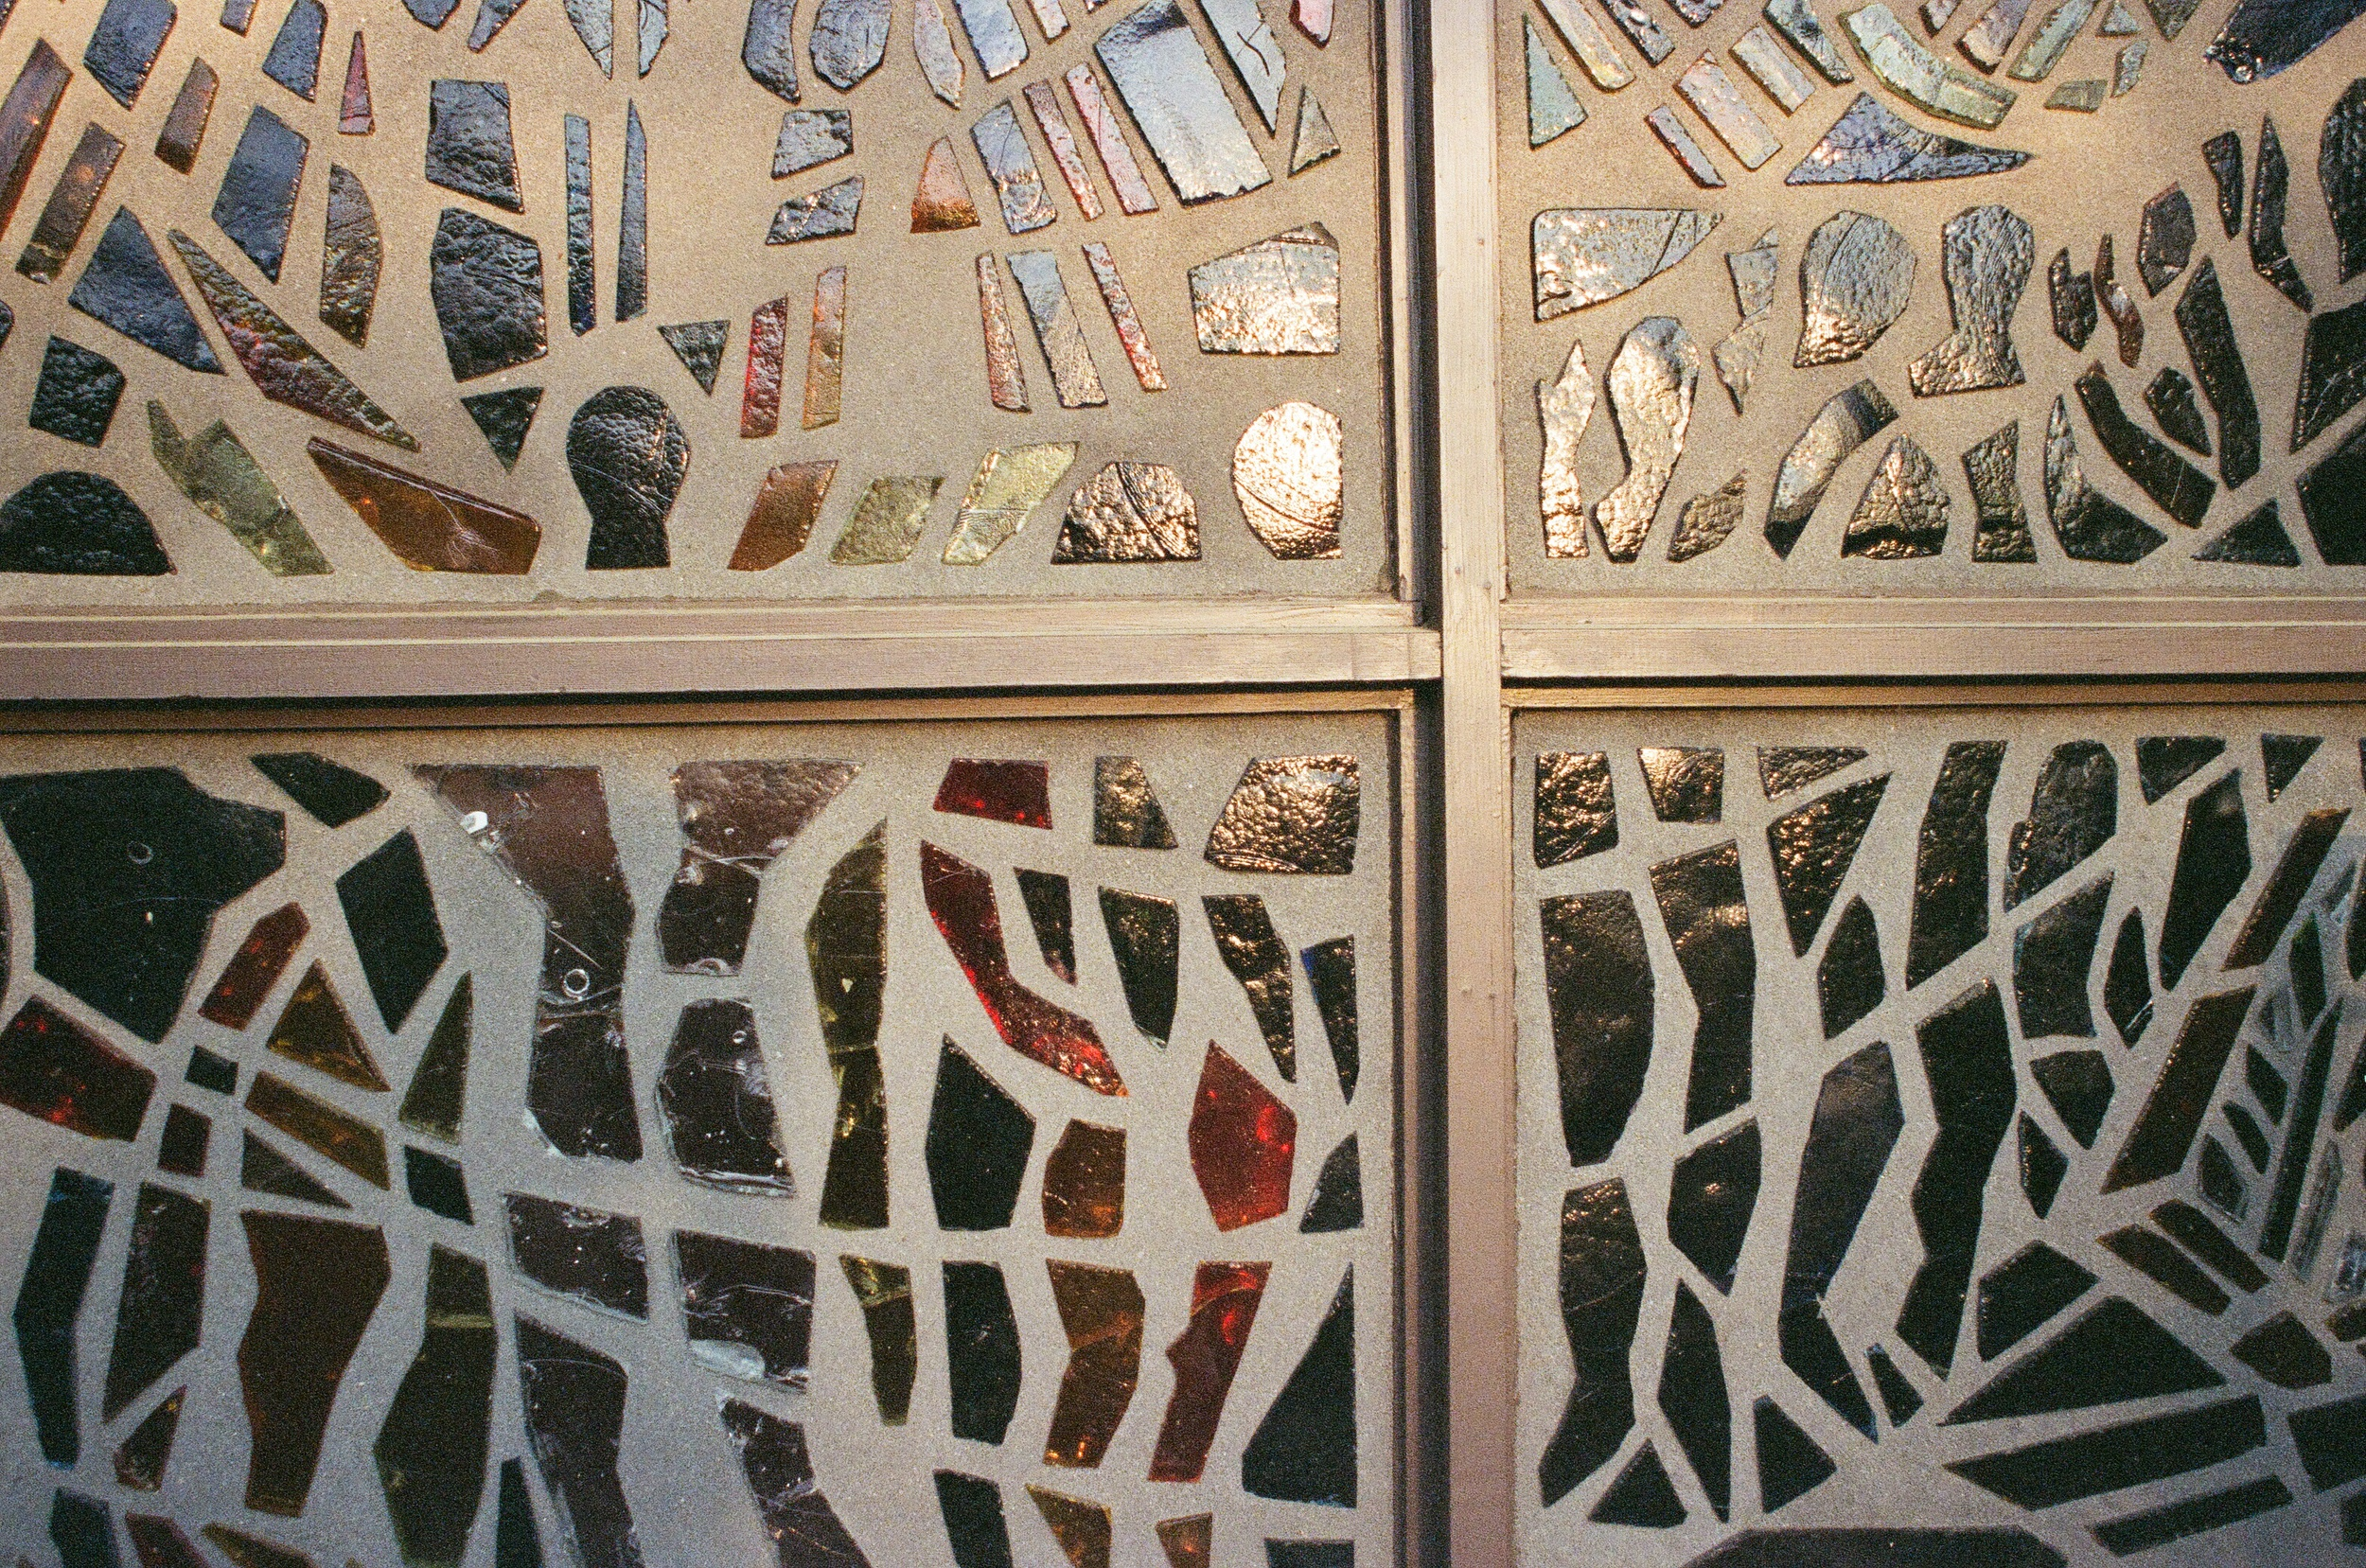 The memorial chapel at the birthplace museum has some very 70s-style architecture, such as these abstract stained-glass windows.